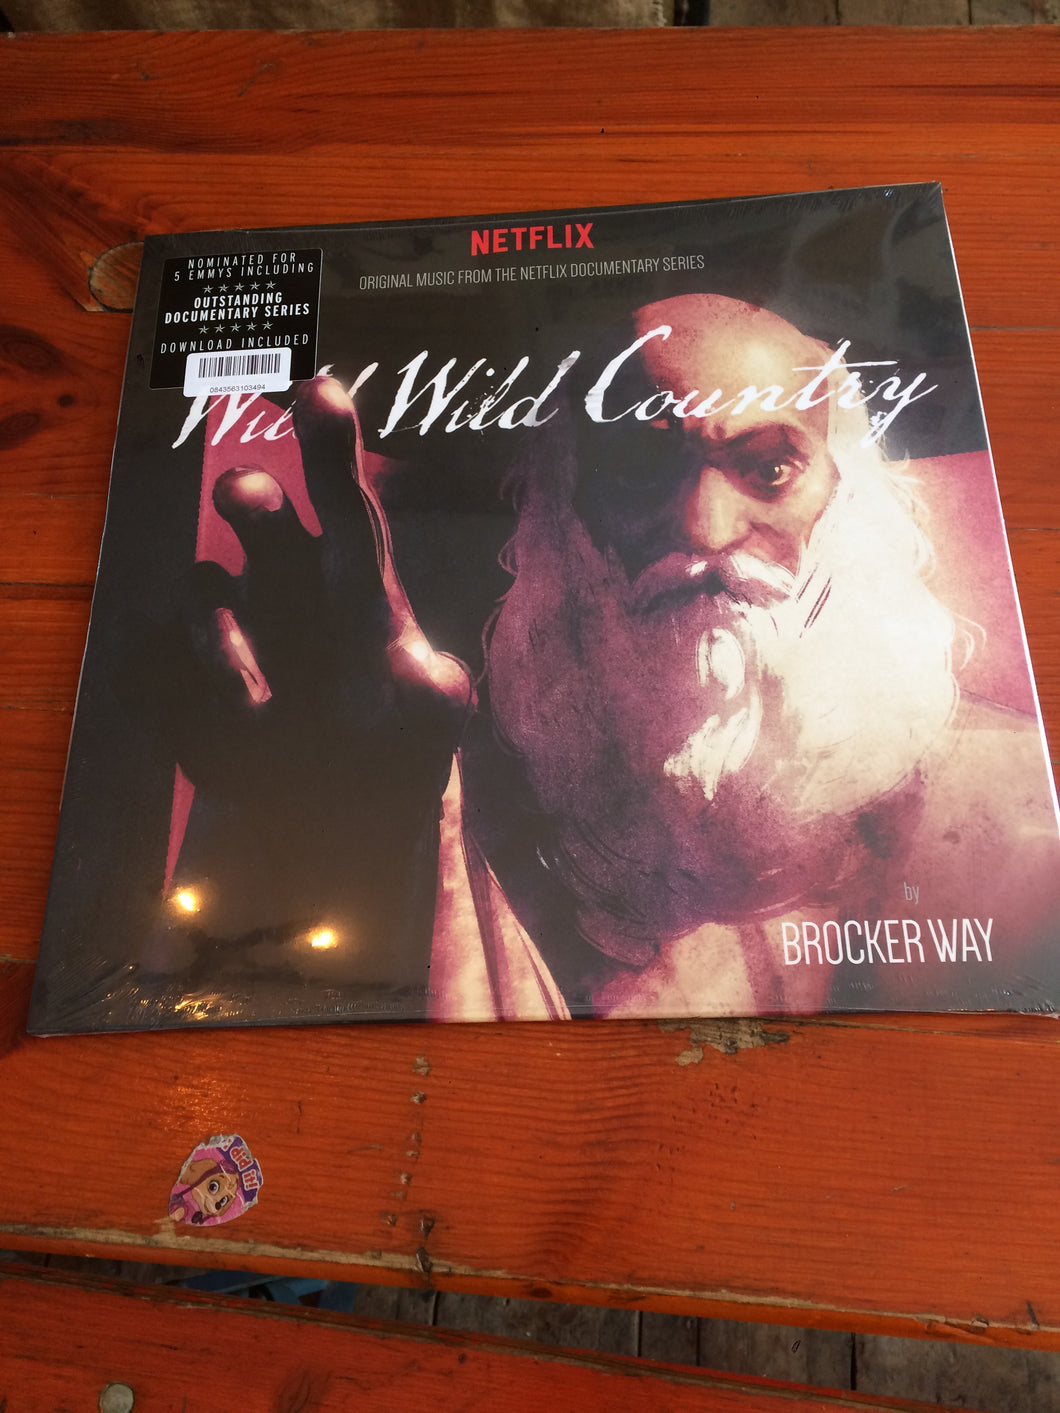 Wild Wild Country - Original Music From The Netflix Documentary Series by Brocker Way